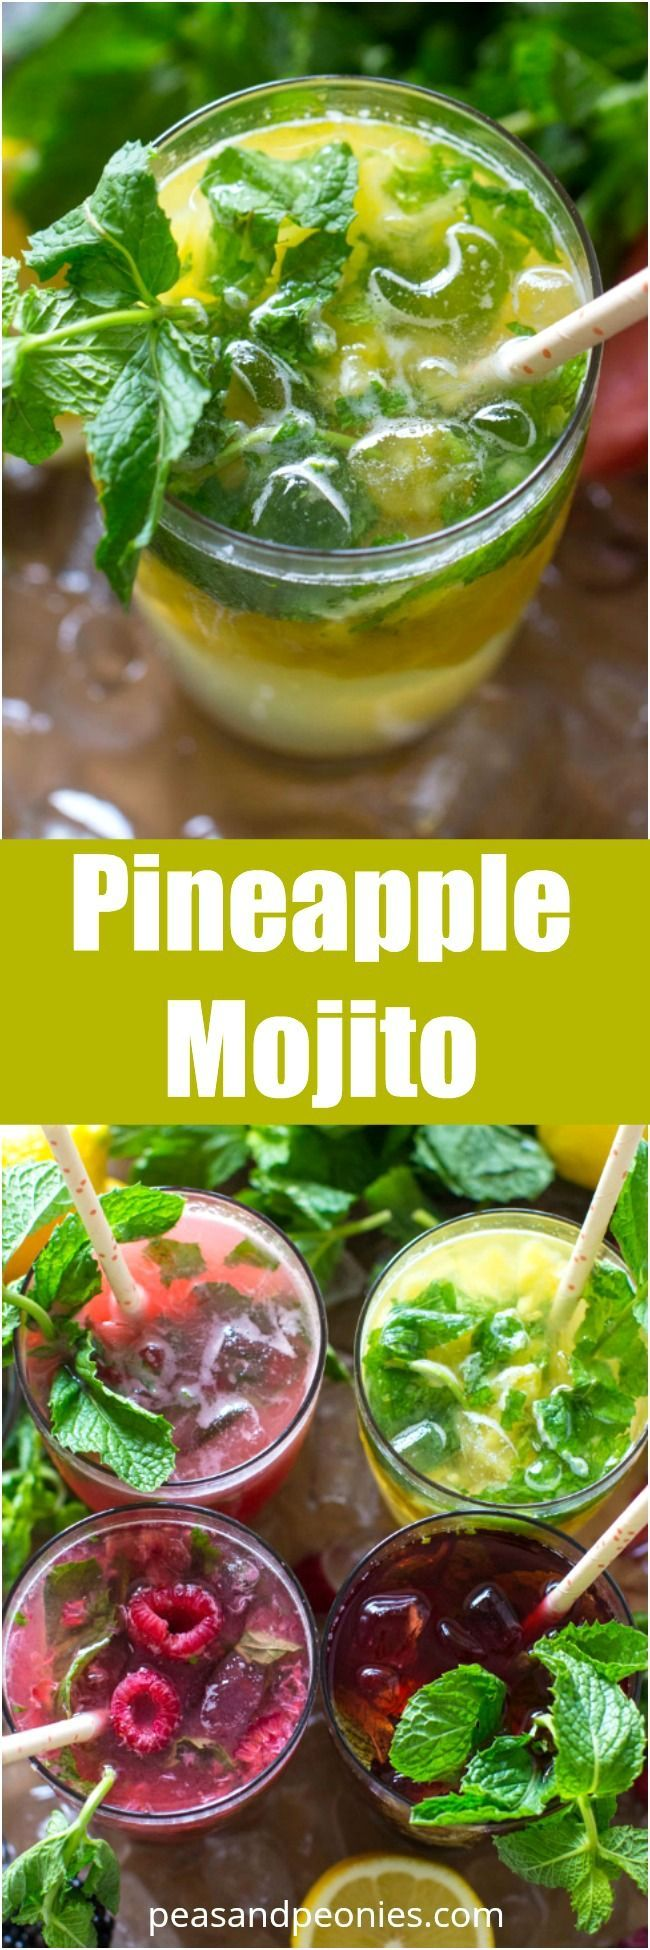 how to make the perfect mojito drink